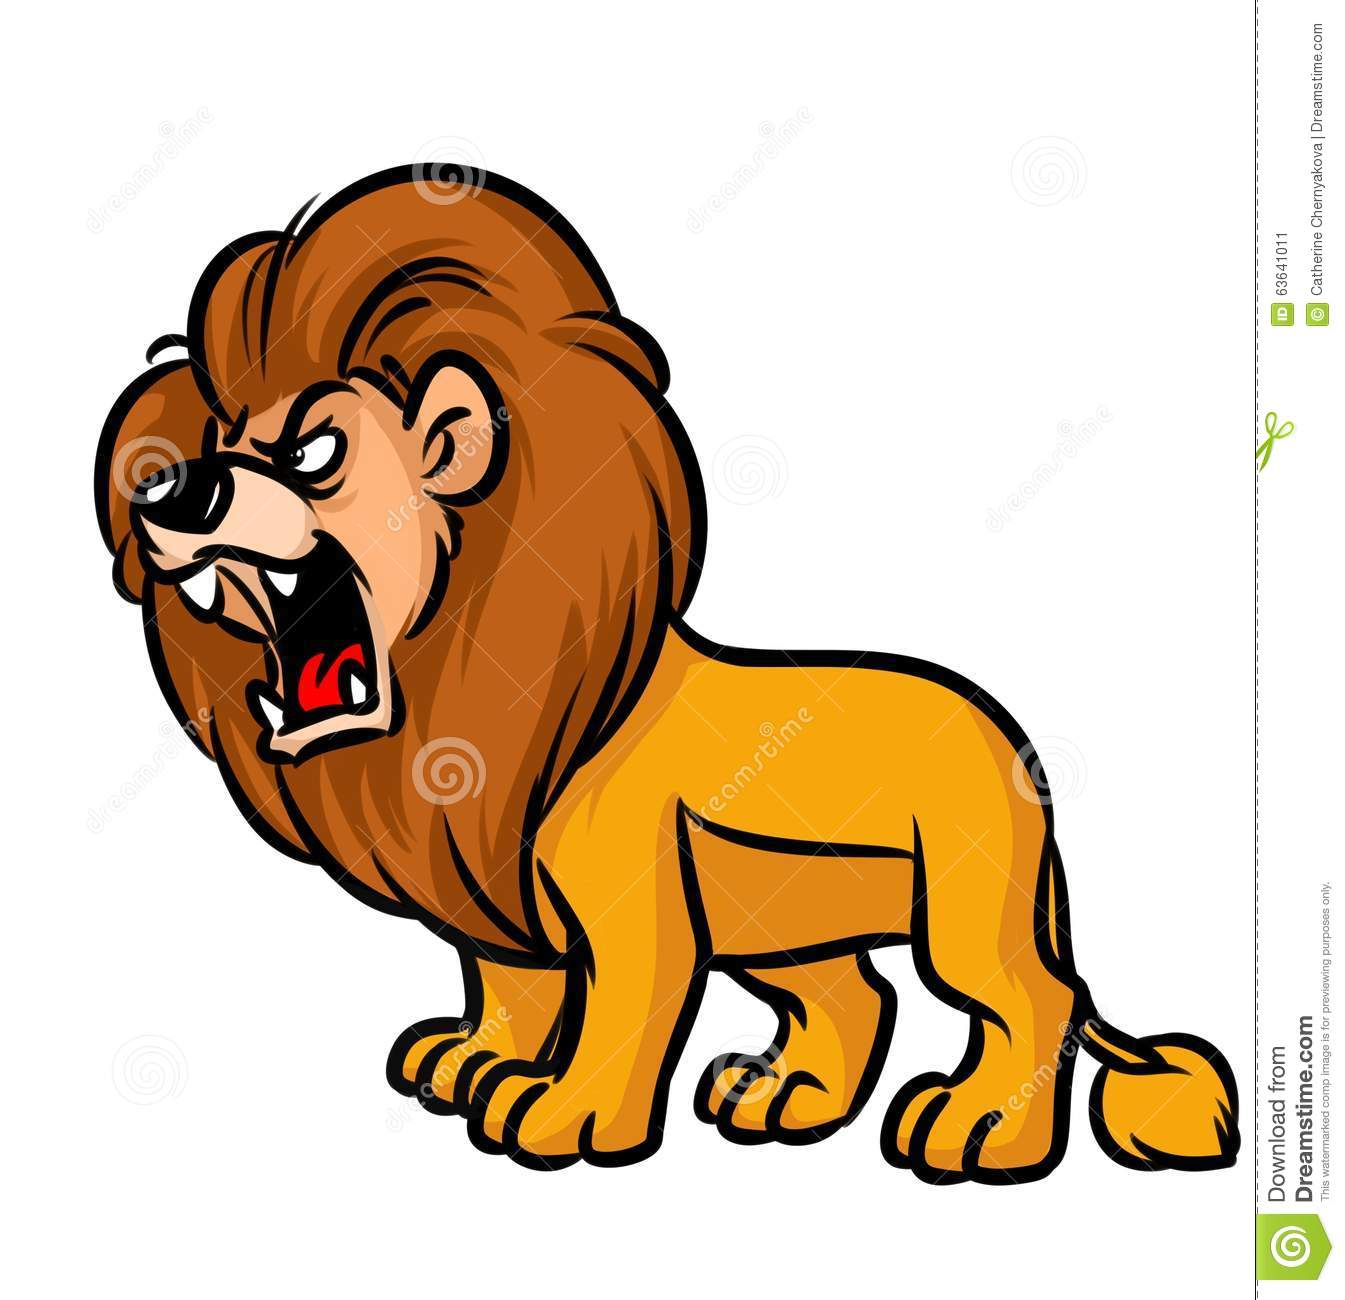 Animal roar clipart.